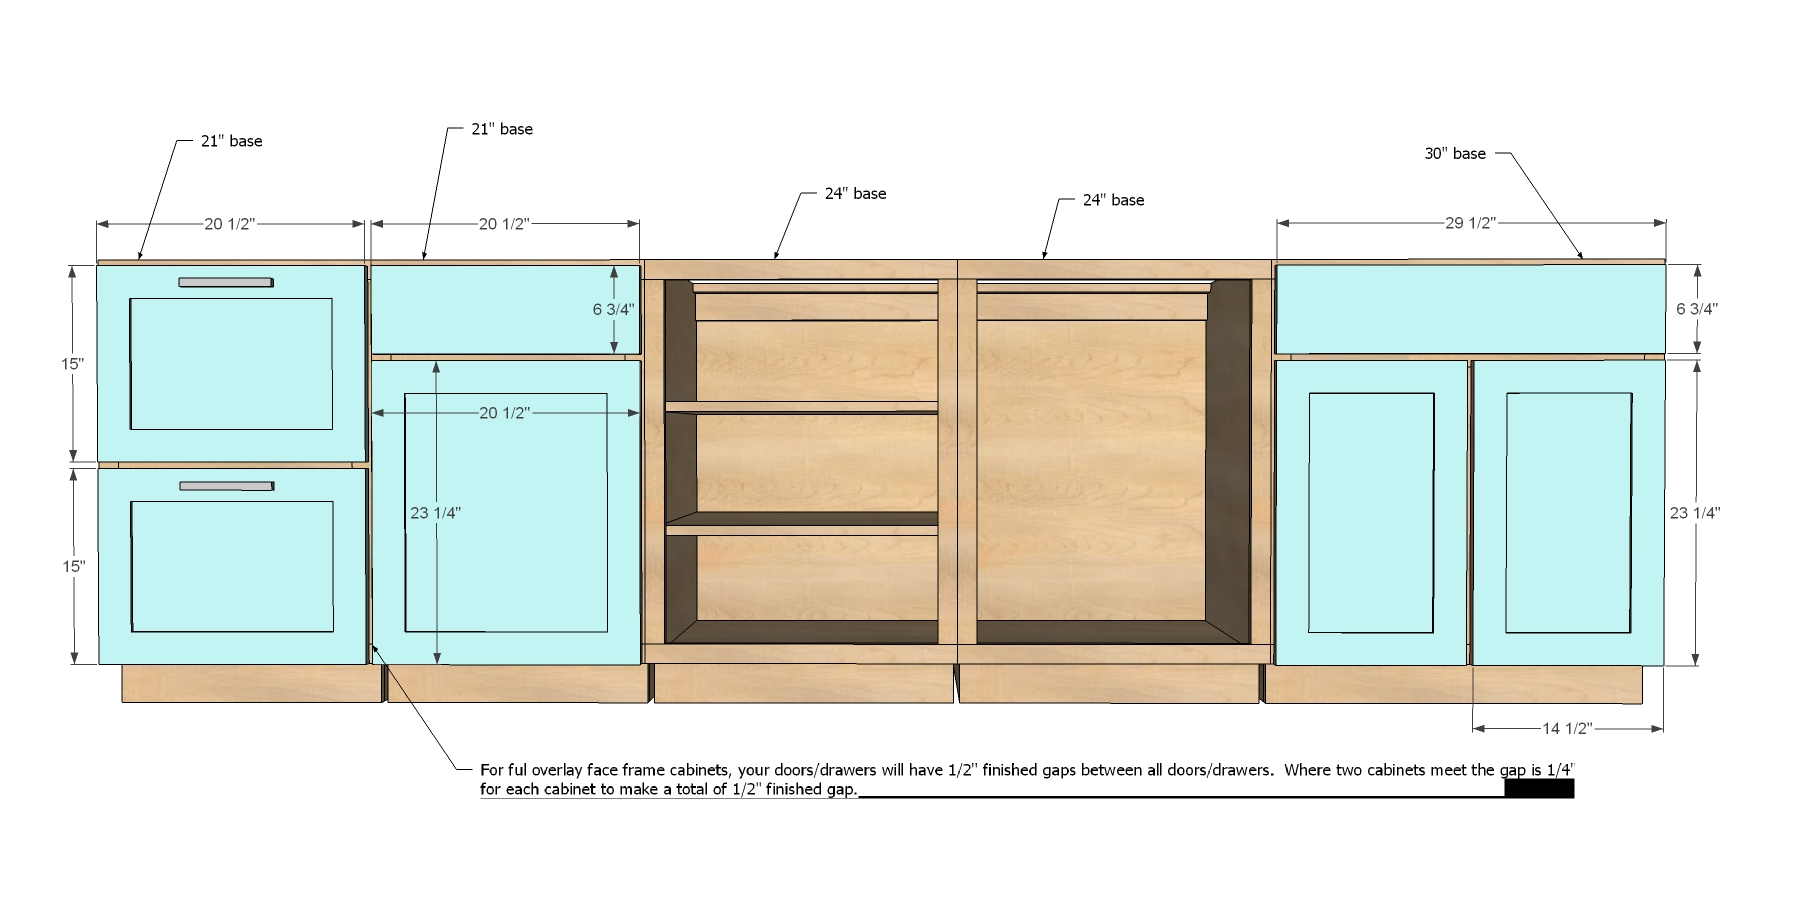 Standard Dimensions For Kitchen Cabinets The Common Standard Kitchen Cabinet Sizes That Must Be